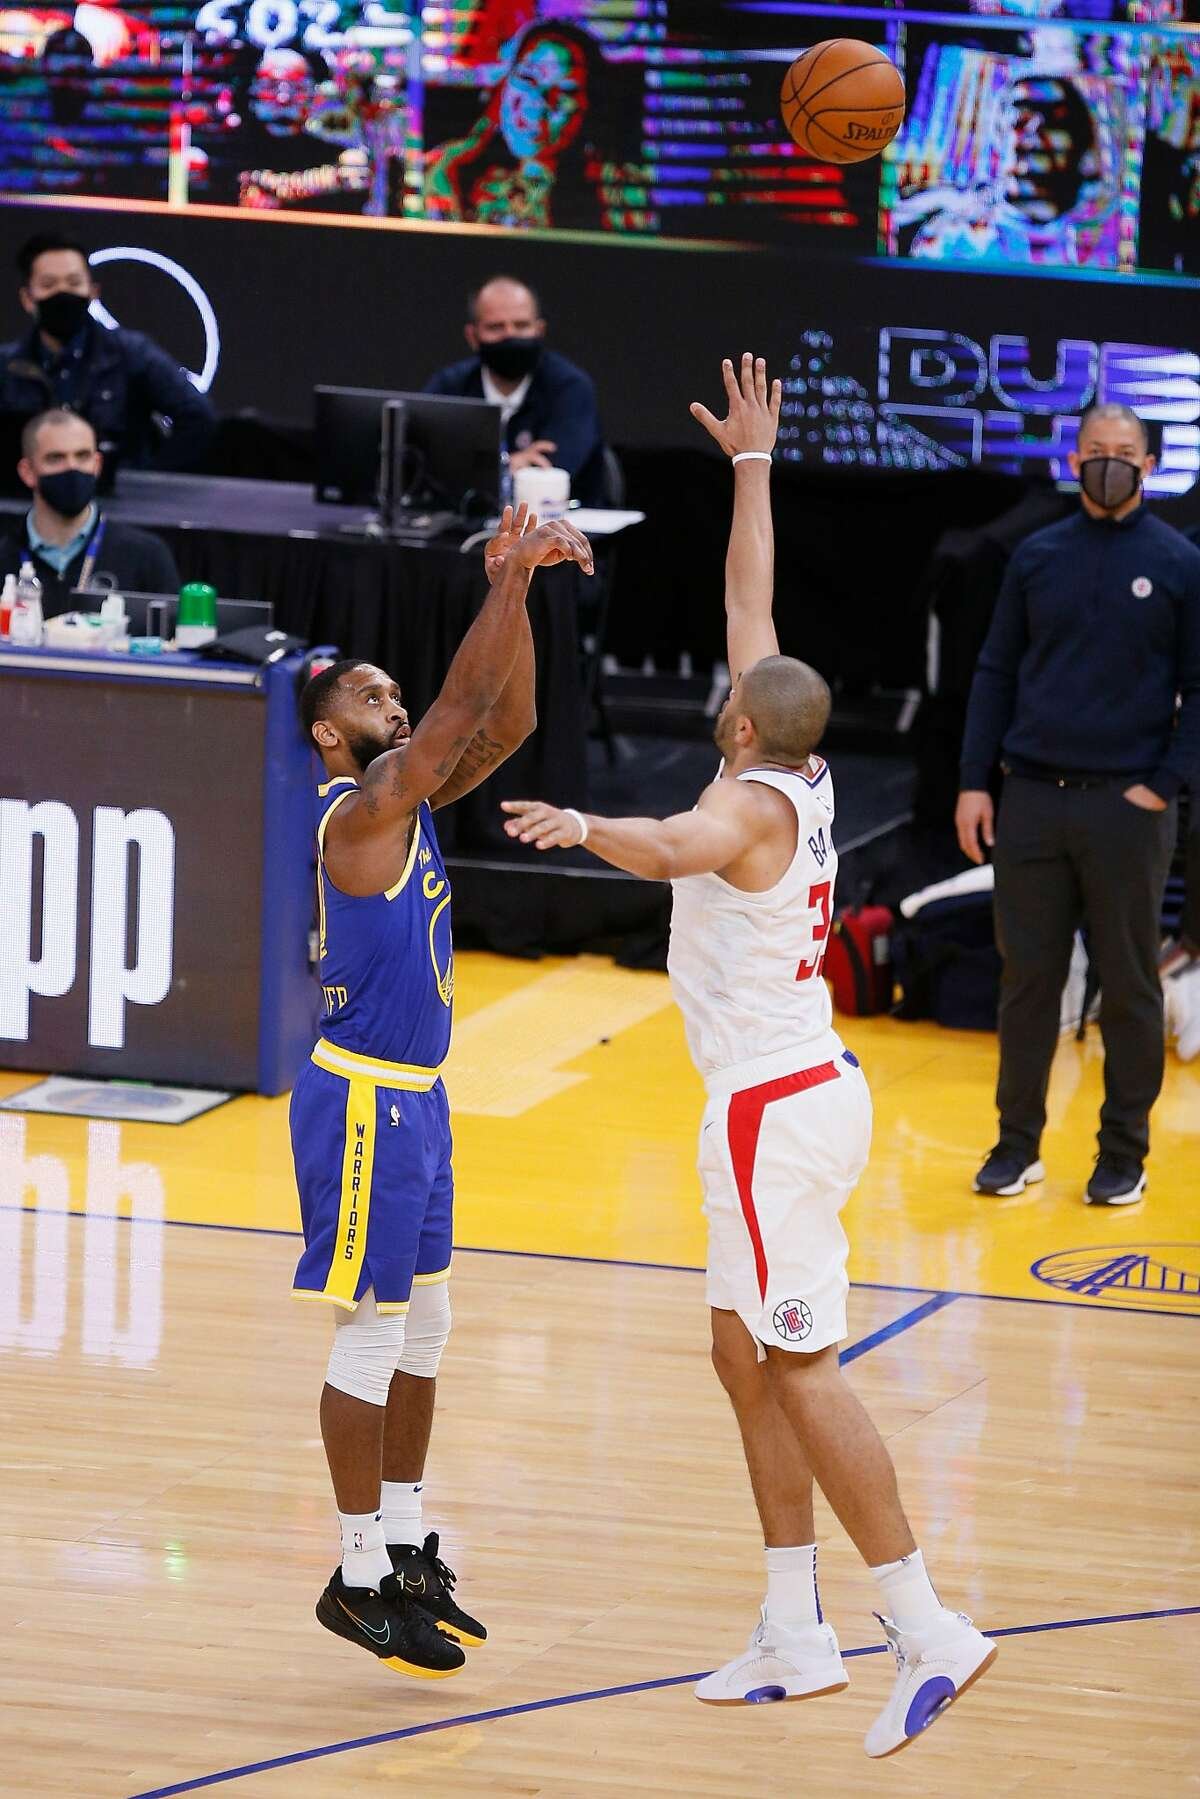 Golden State Warriors guard Brad Wanamaker (10) scores a three-point field goal against LA Clippers forward Nicolas Batum (33) in the fourth quarter during an NBA game at Chase Center, Friday, Jan. 8, 2021, in San Francisco, Calif. The Warriors won 115-105.